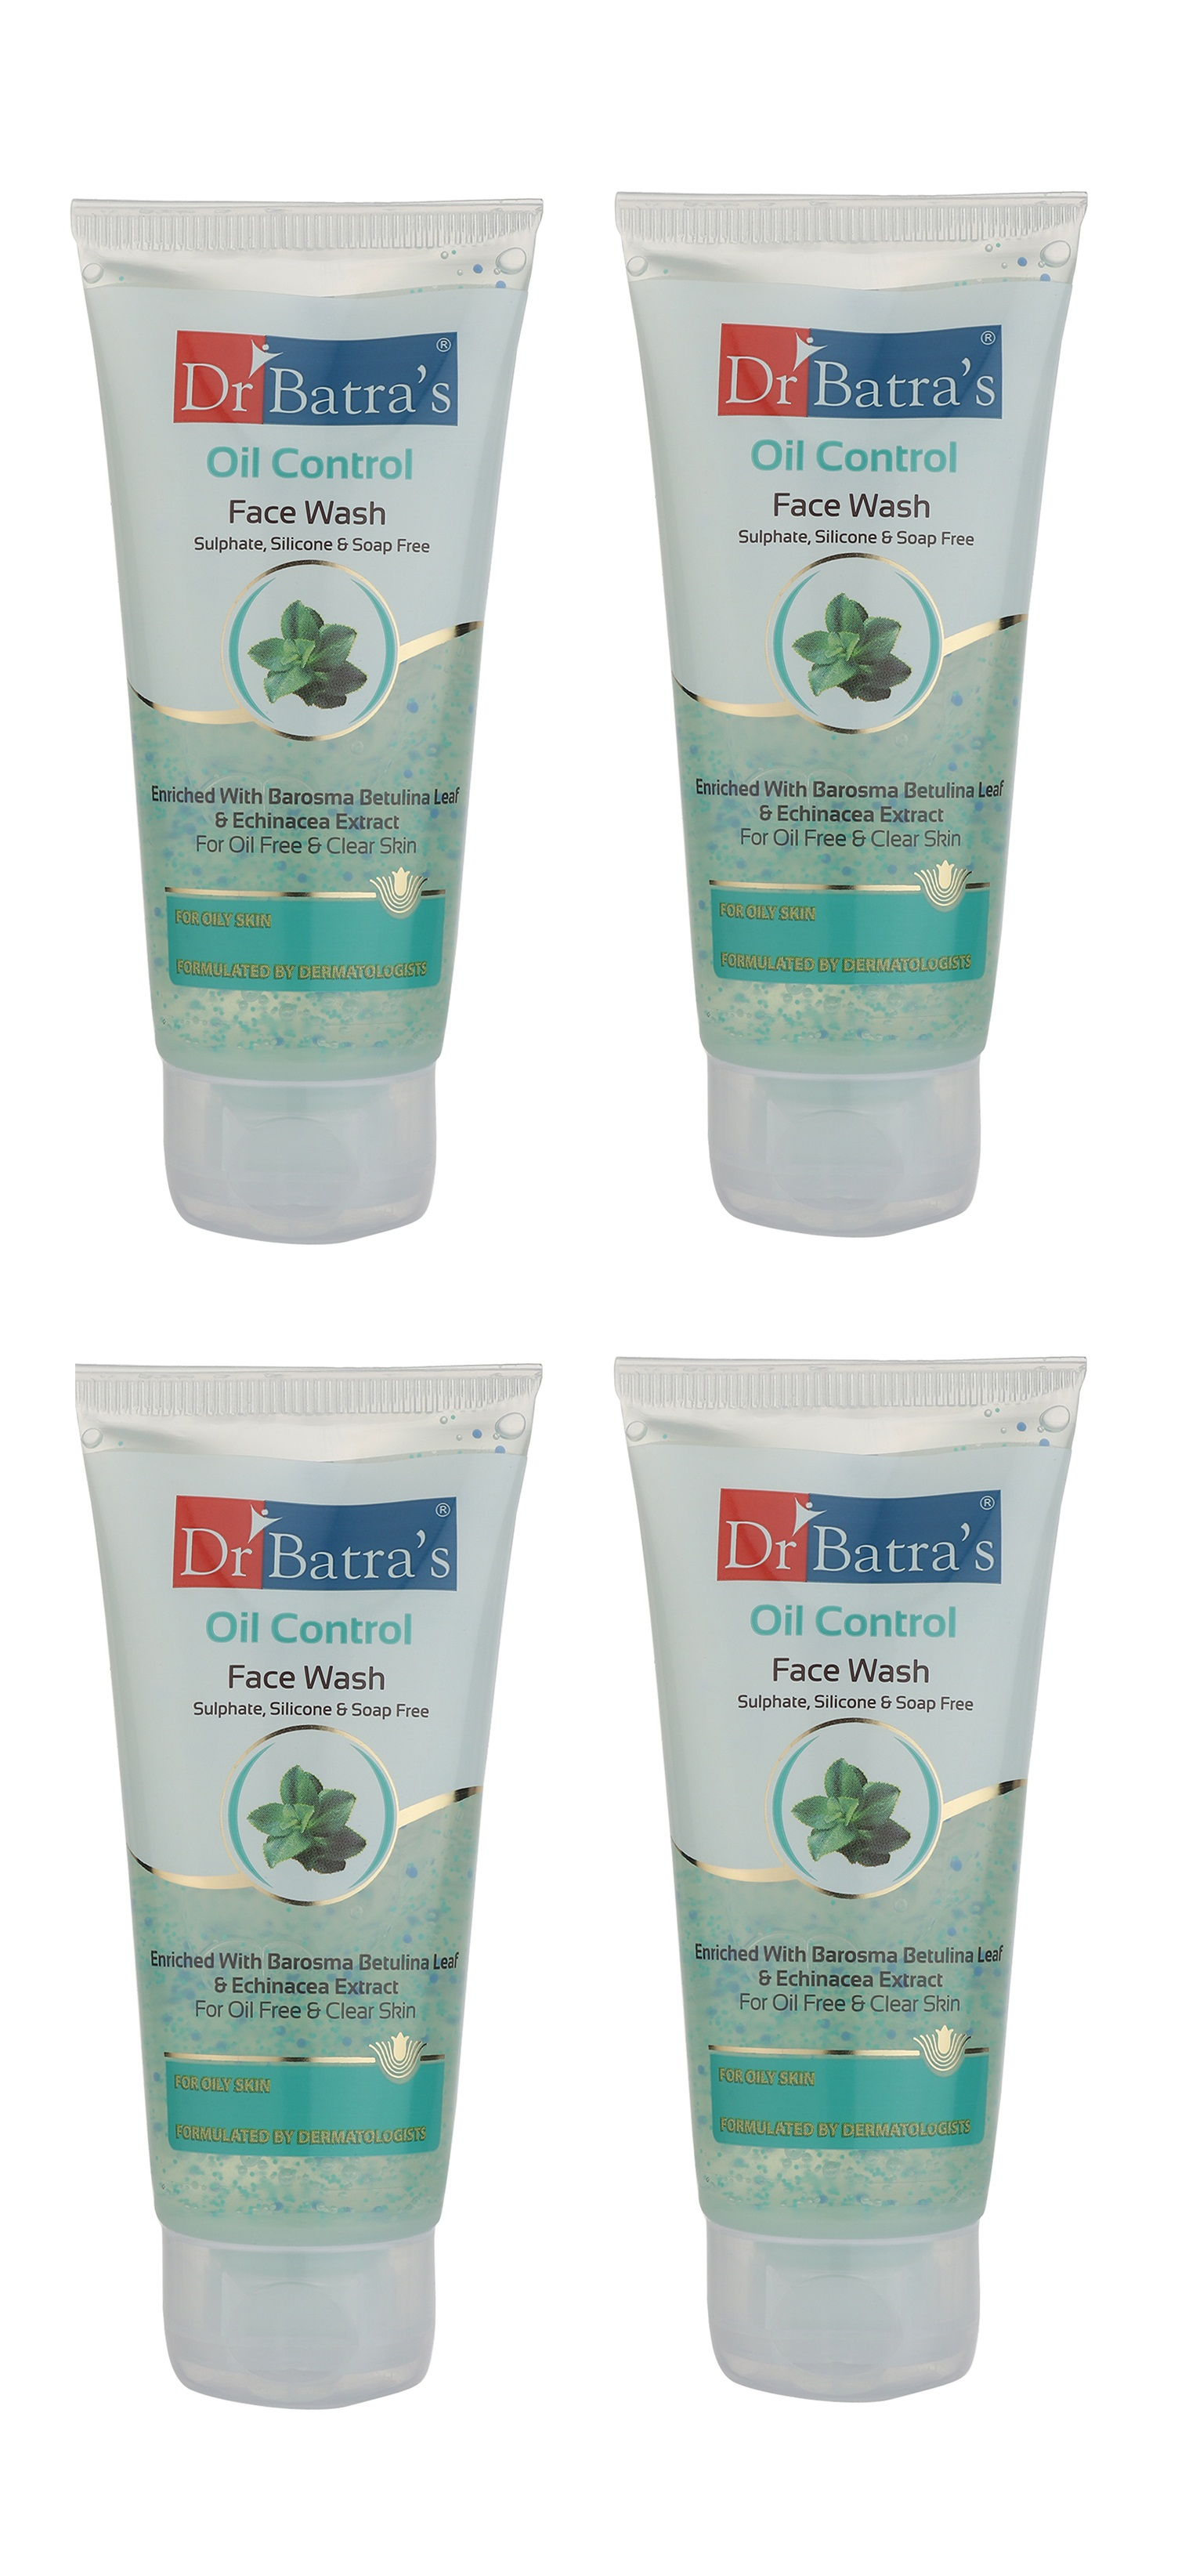 Dr Batra's | Dr Batra's Oil Control Face Wash Sulphate, Silicone & Soap Free Enriched With Barosma Betulina Leaf & Echinancea Extract For Oil Free & Clear Skin - 50 gm (Pack of 4)